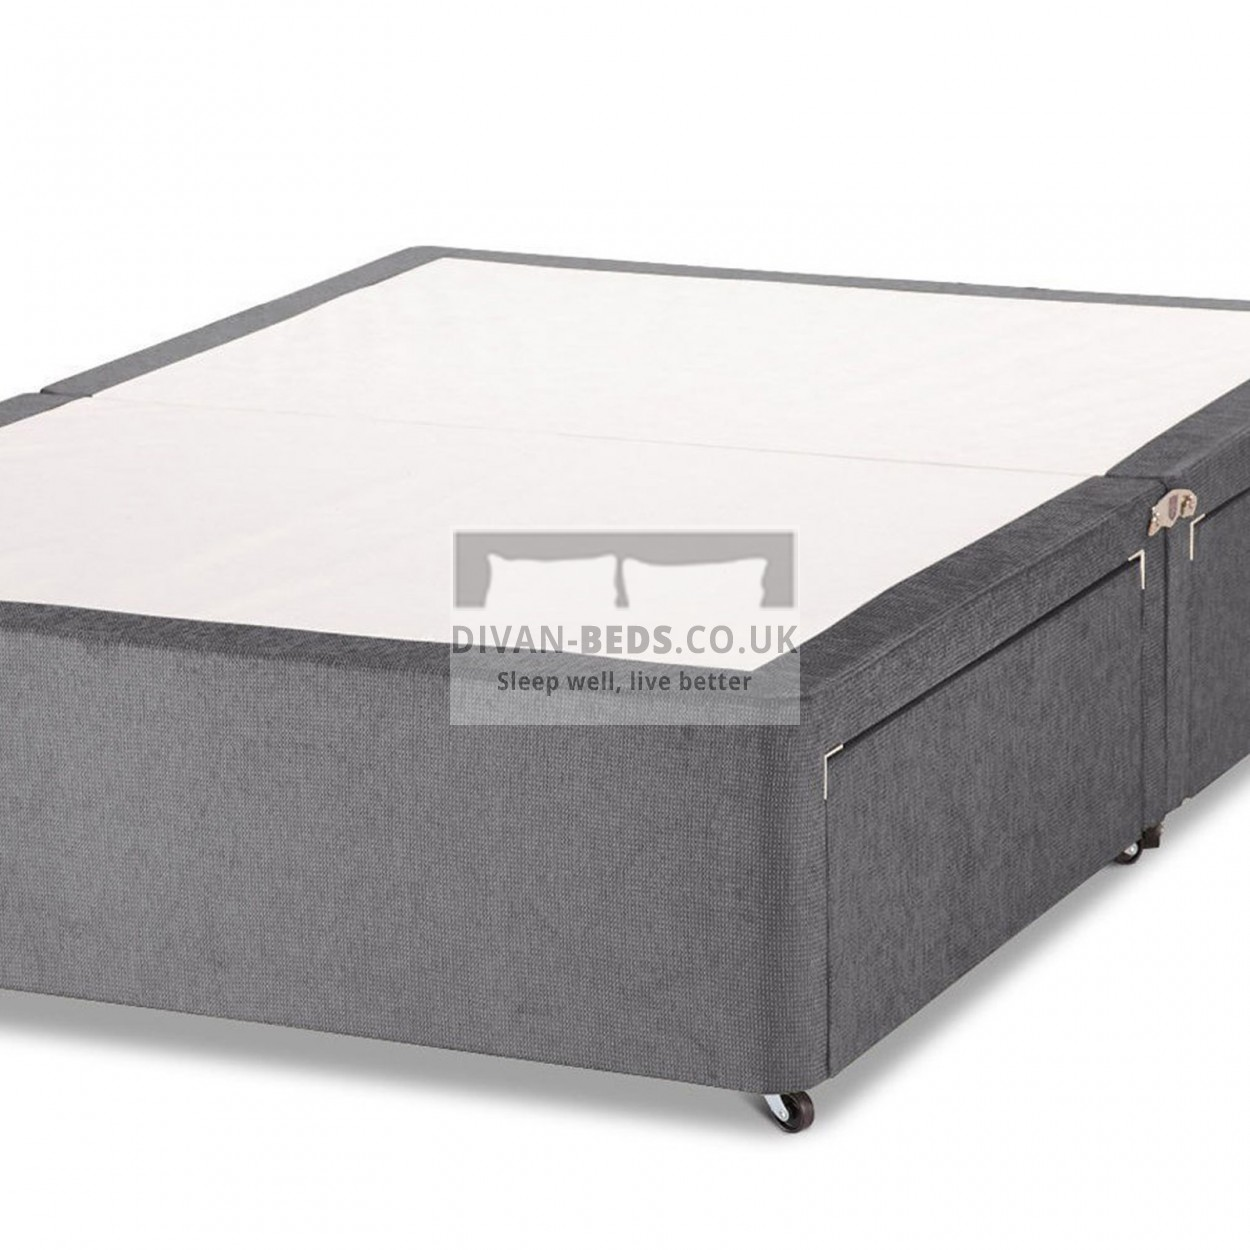 Wilson chenille divan base only guaranteed cheapest for High divan base